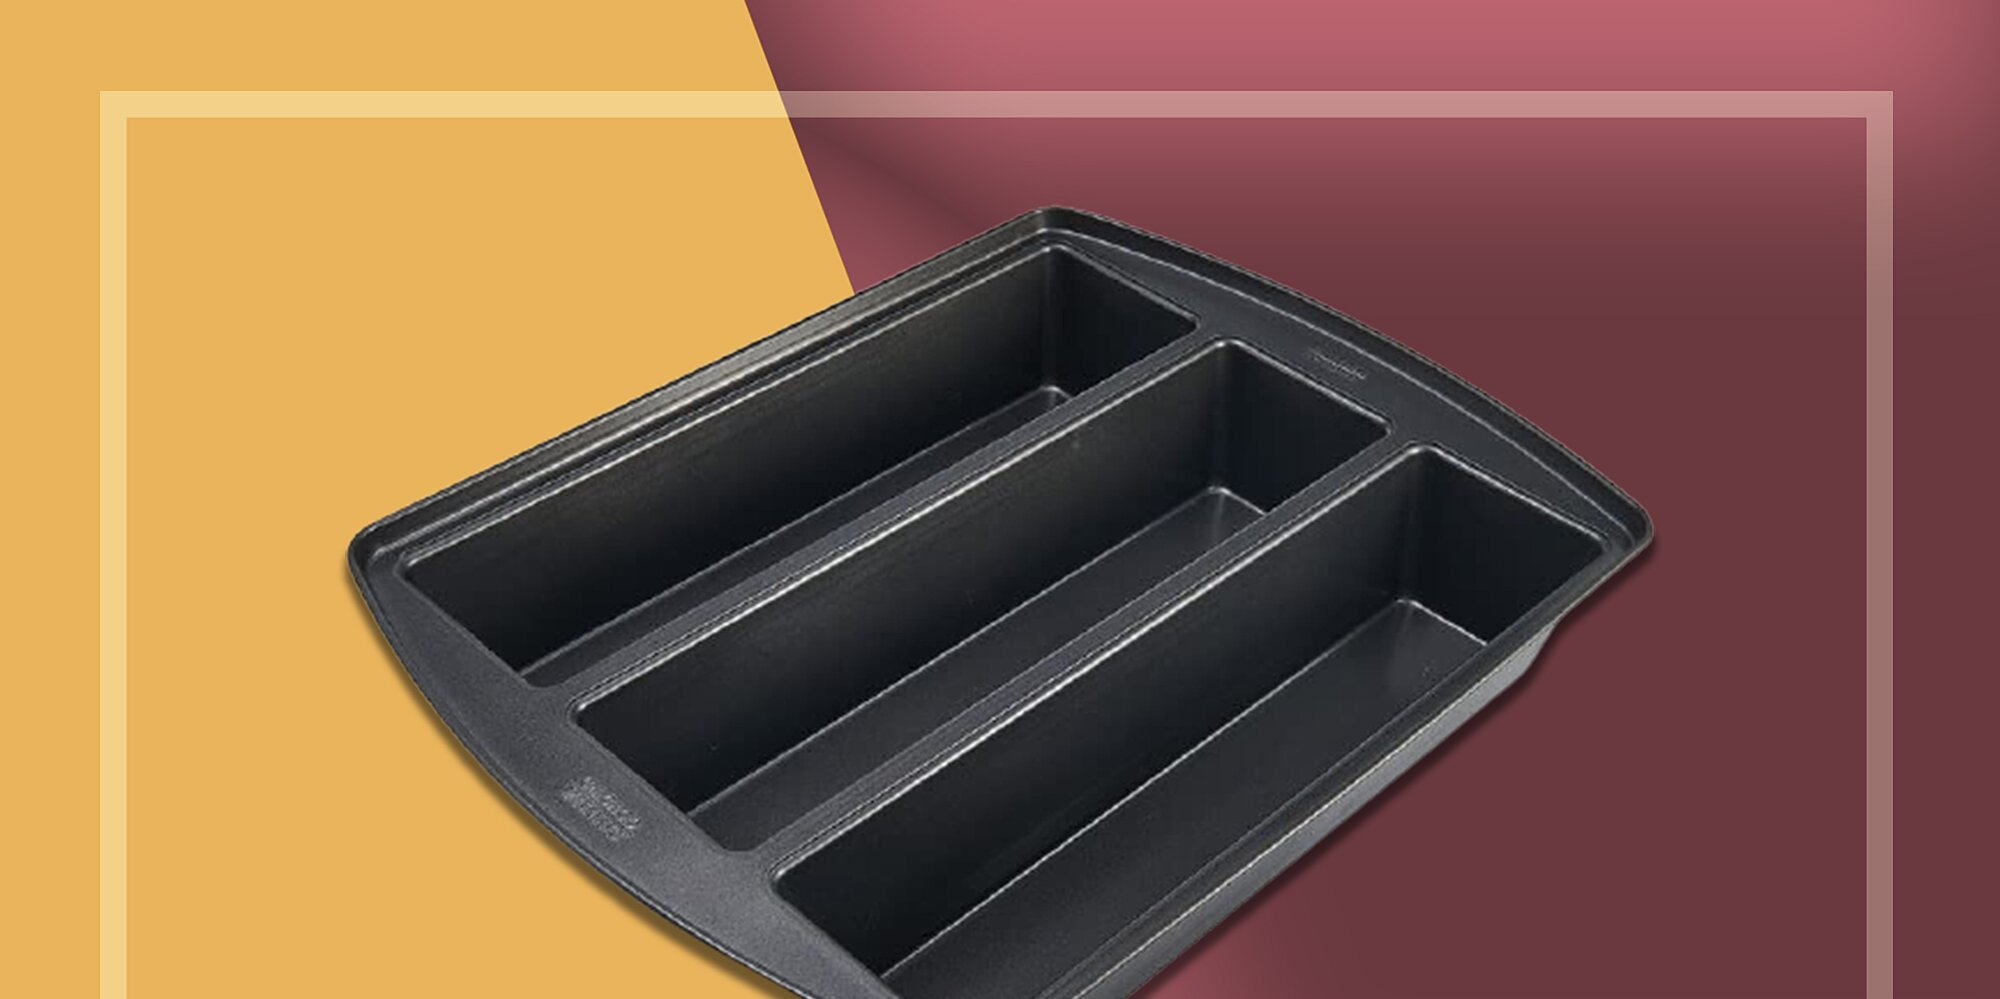 The Baking Pan That Can Do It All Is Back in Stock